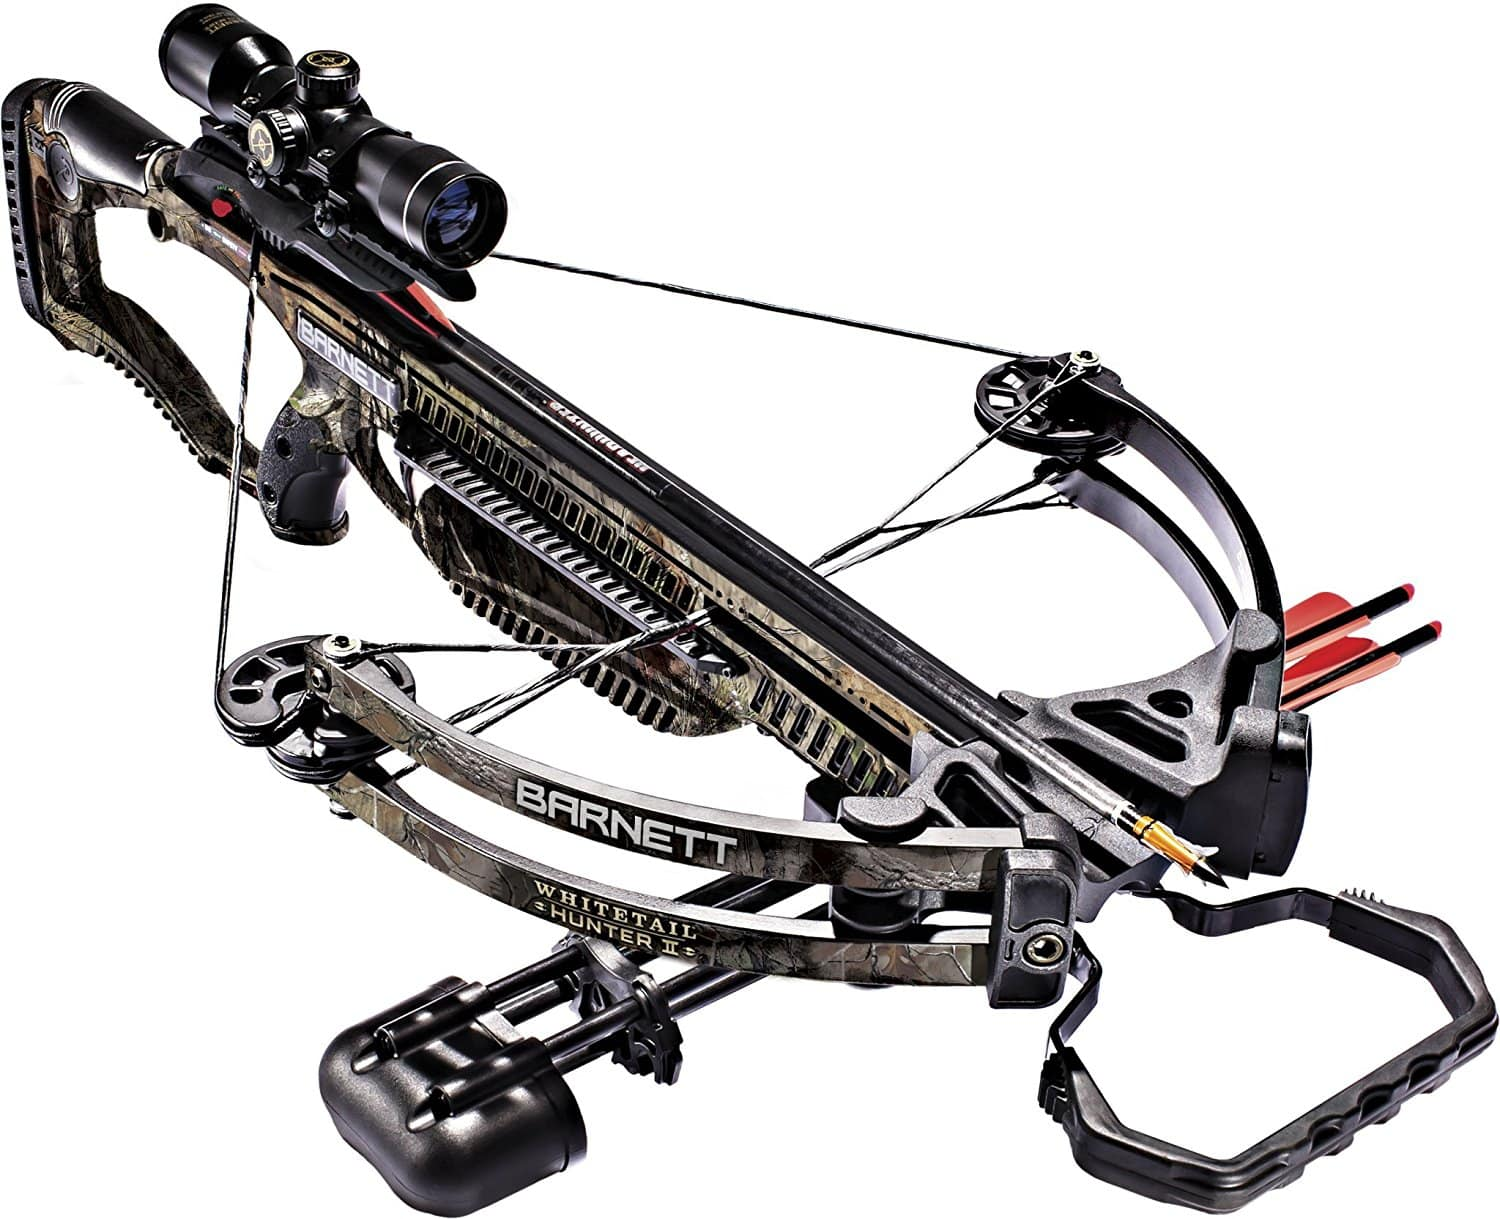 Barnett 78128 Crossbow Review